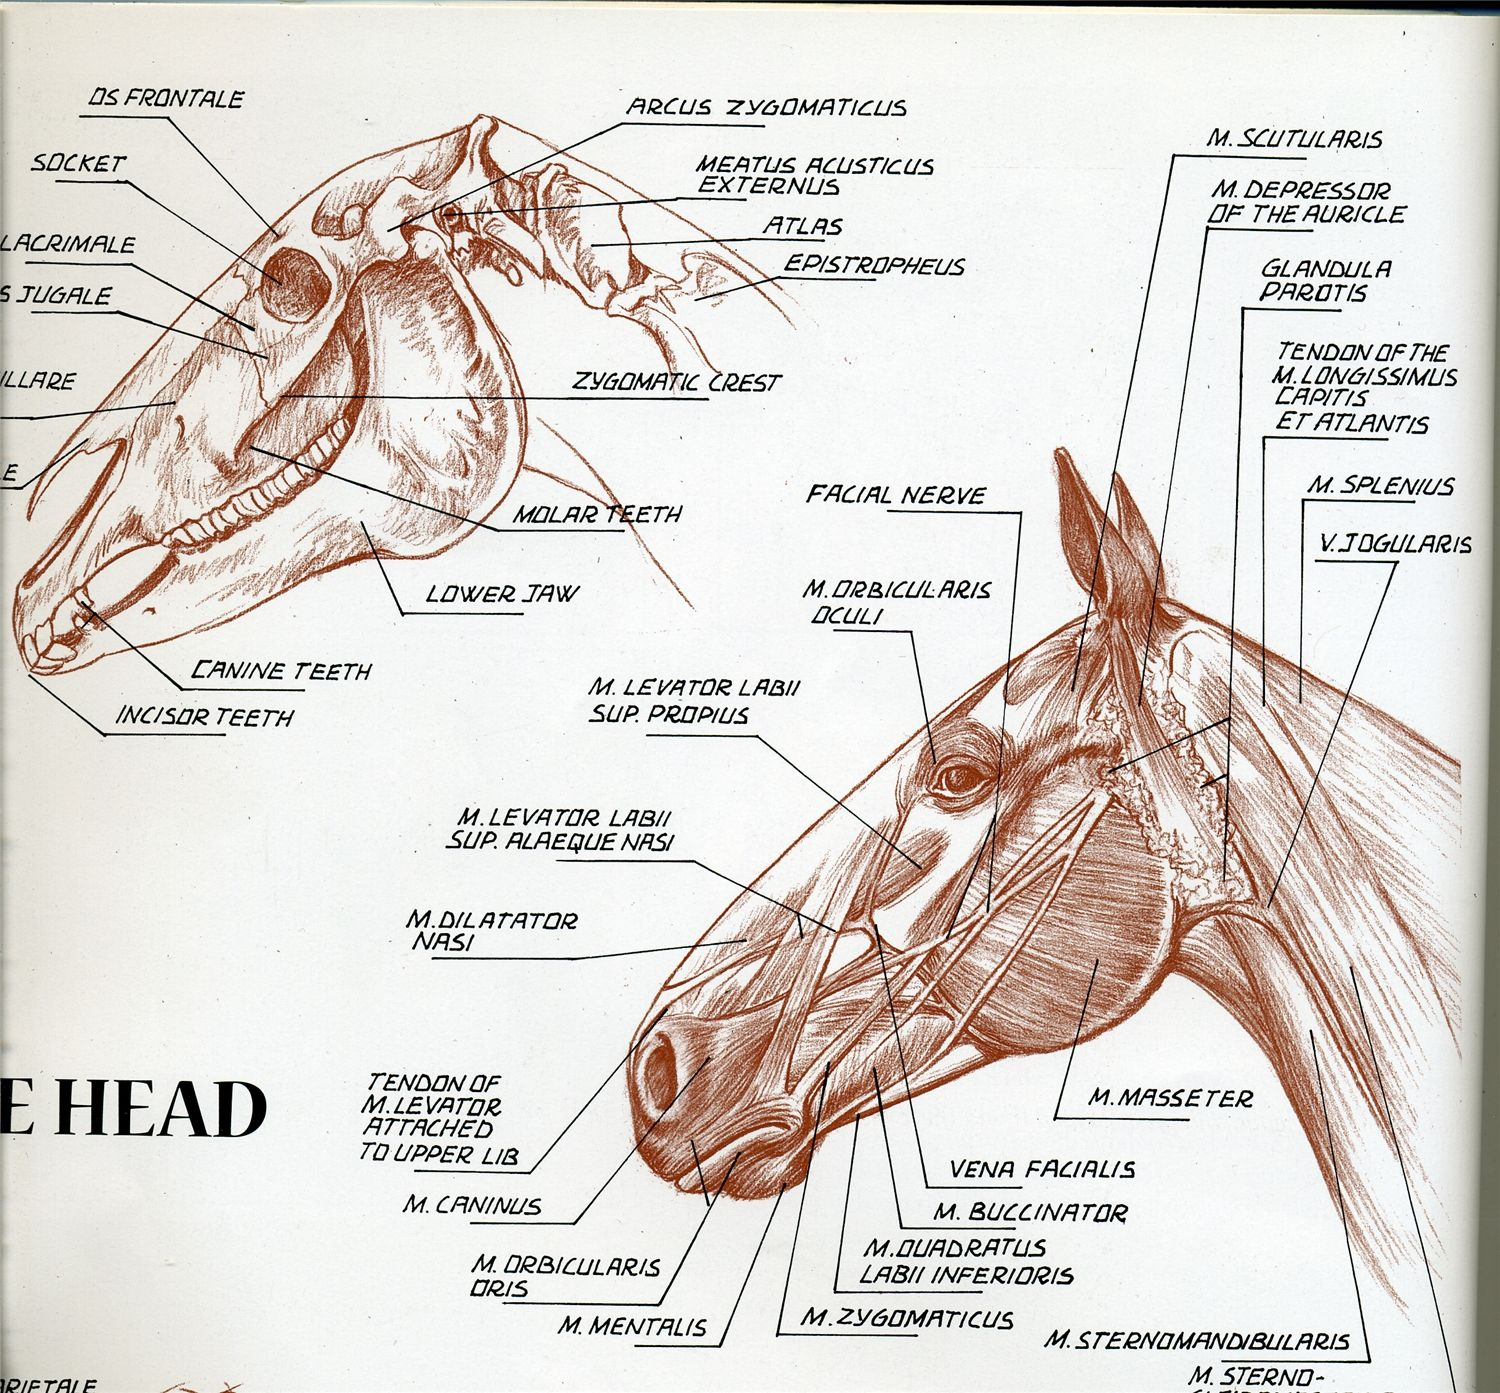 Pin by Izabella Gowdy on Horse Anatomy | Pinterest | Horse, Anatomy ...